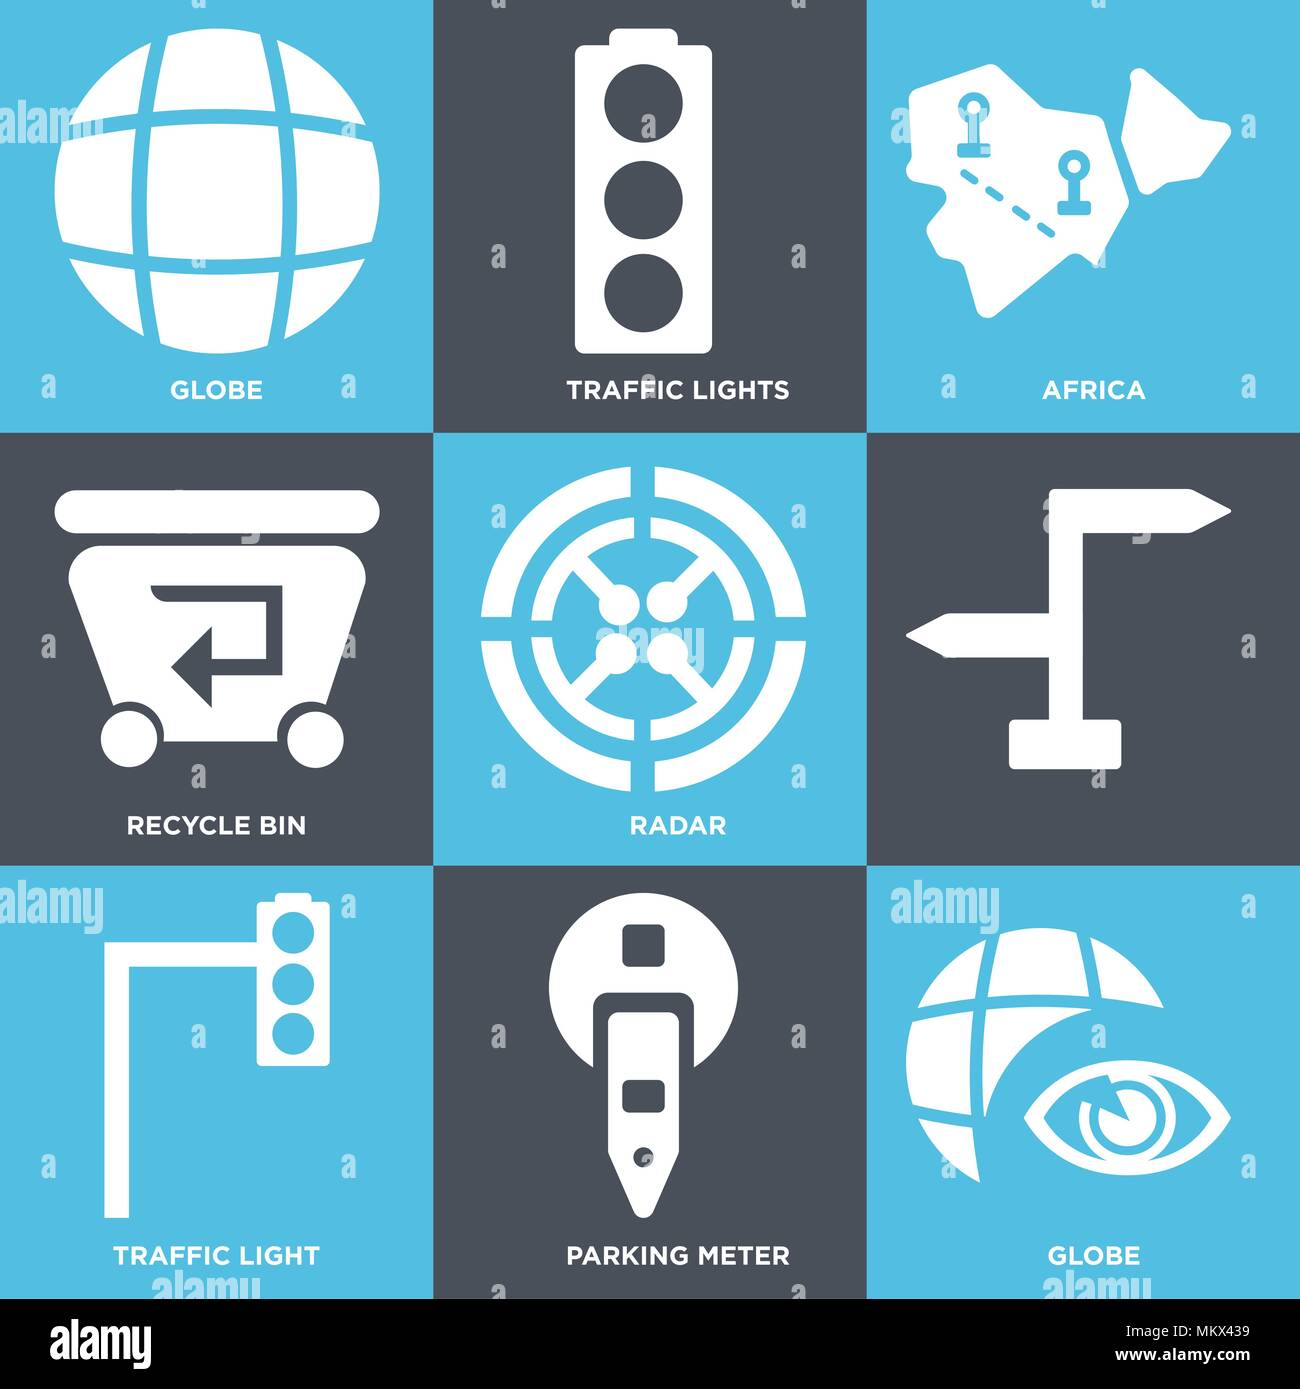 Set Of 9 simple editable icons such as Globe, Parking meter, Traffic light, Radar, Recycle bin, Africa, lights, can be used for mobile, web Stock Vector